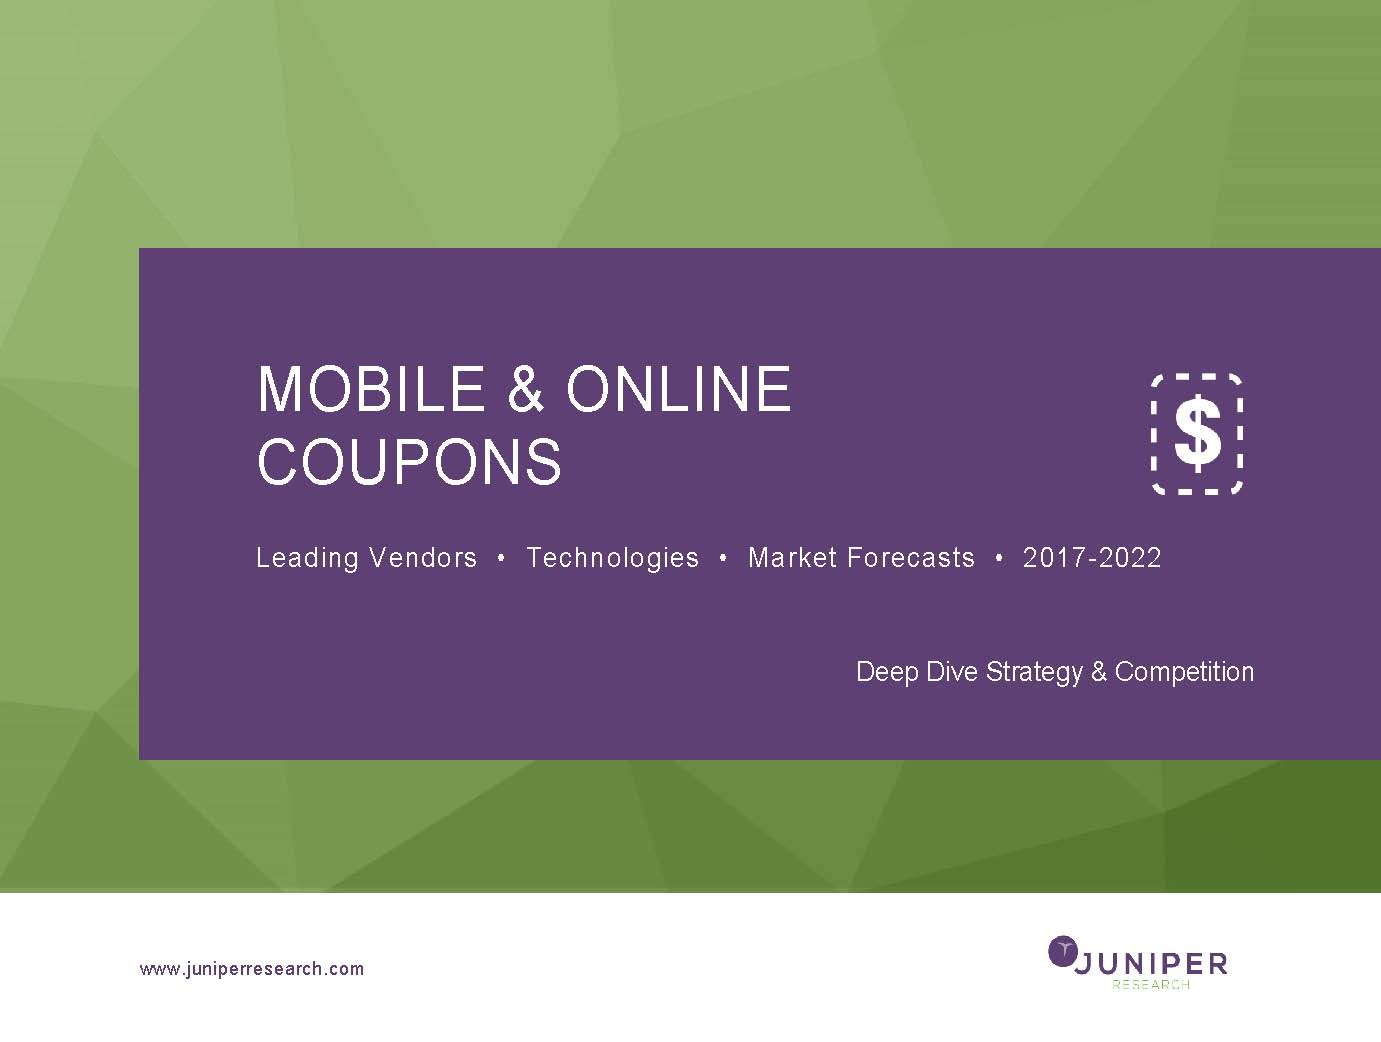 Mobile & Online Coupons - Deep Dive Strategy & Competition 2017-2022